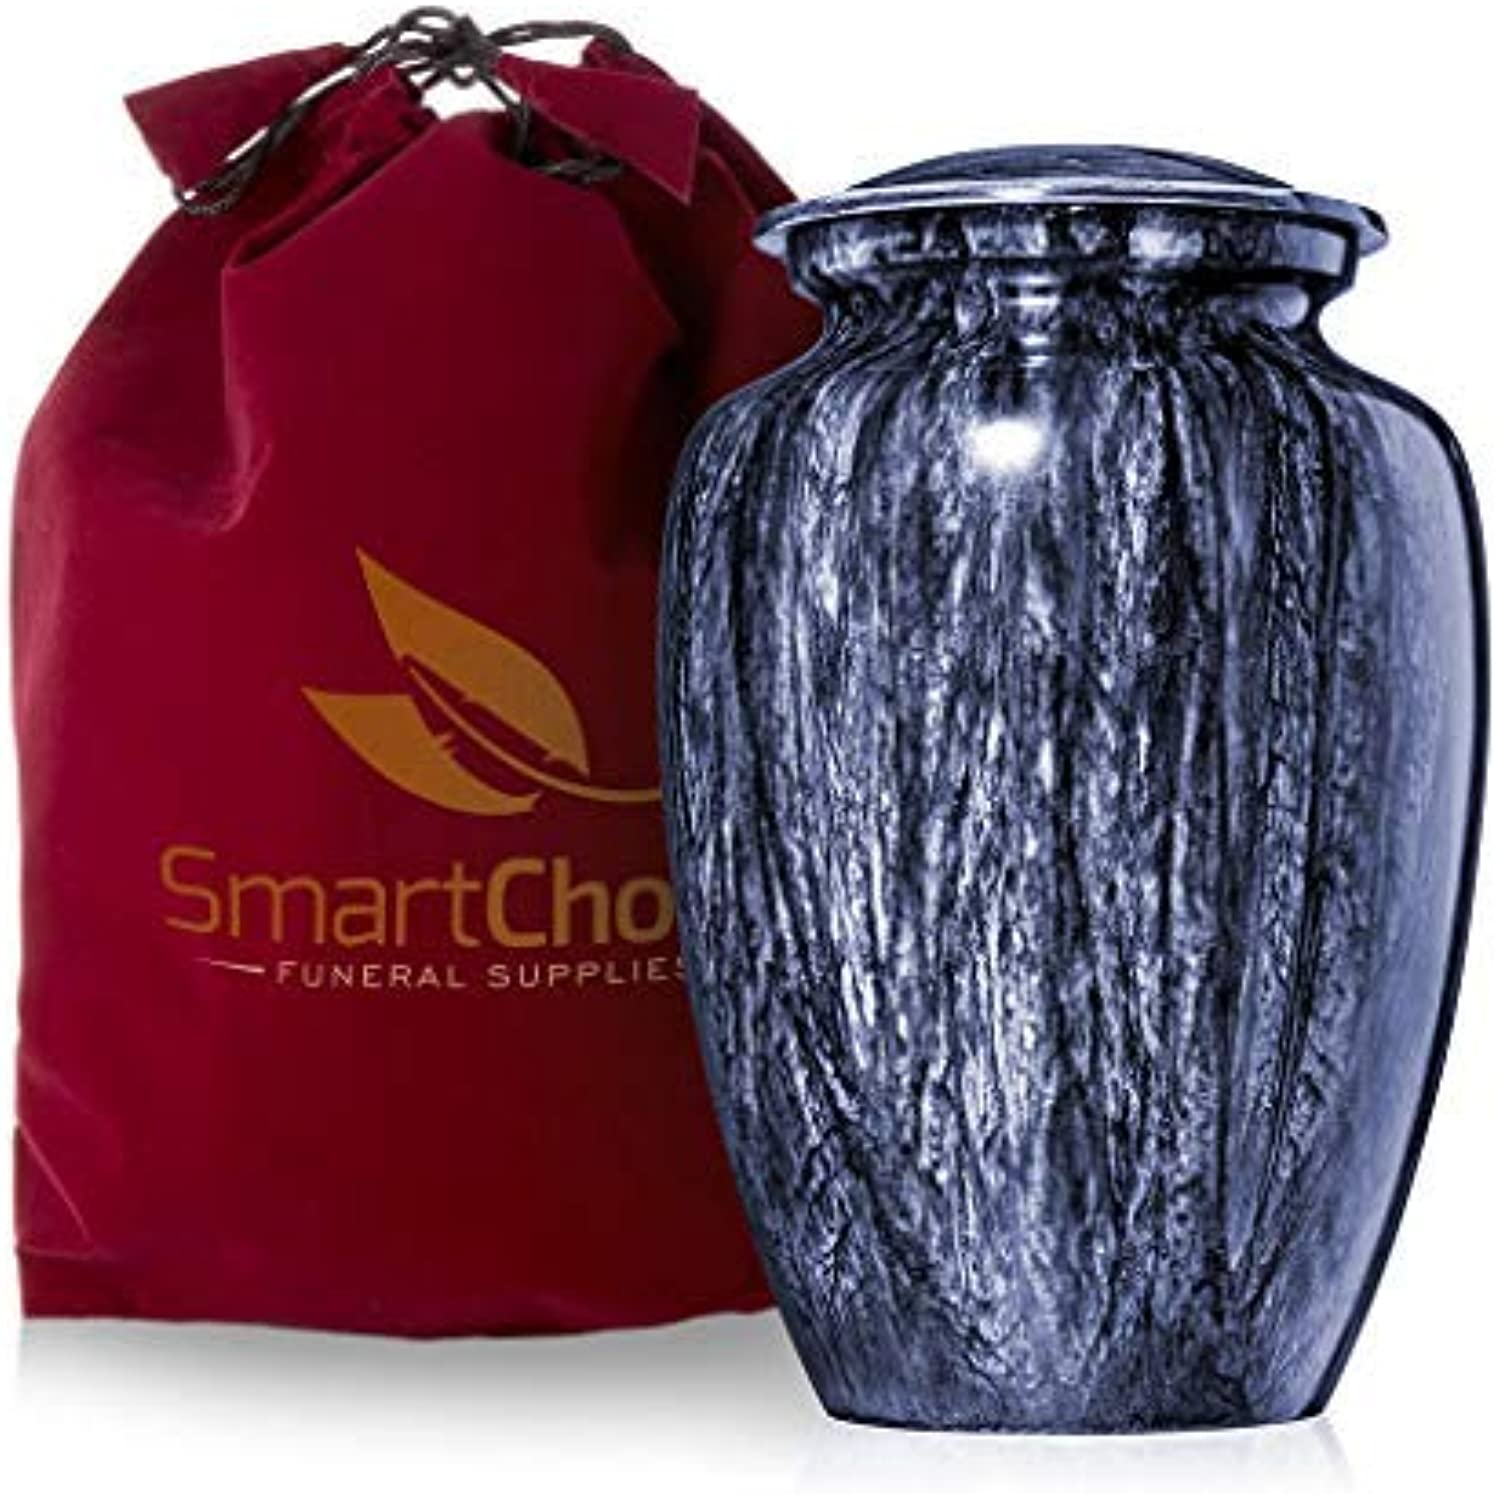 SmartChoice Deep Marbleized bluee Cremation Urn for Human Ashes - Affordable Funeral Urn Adult Urn for Ashes Handcrafted Urn (Adult)